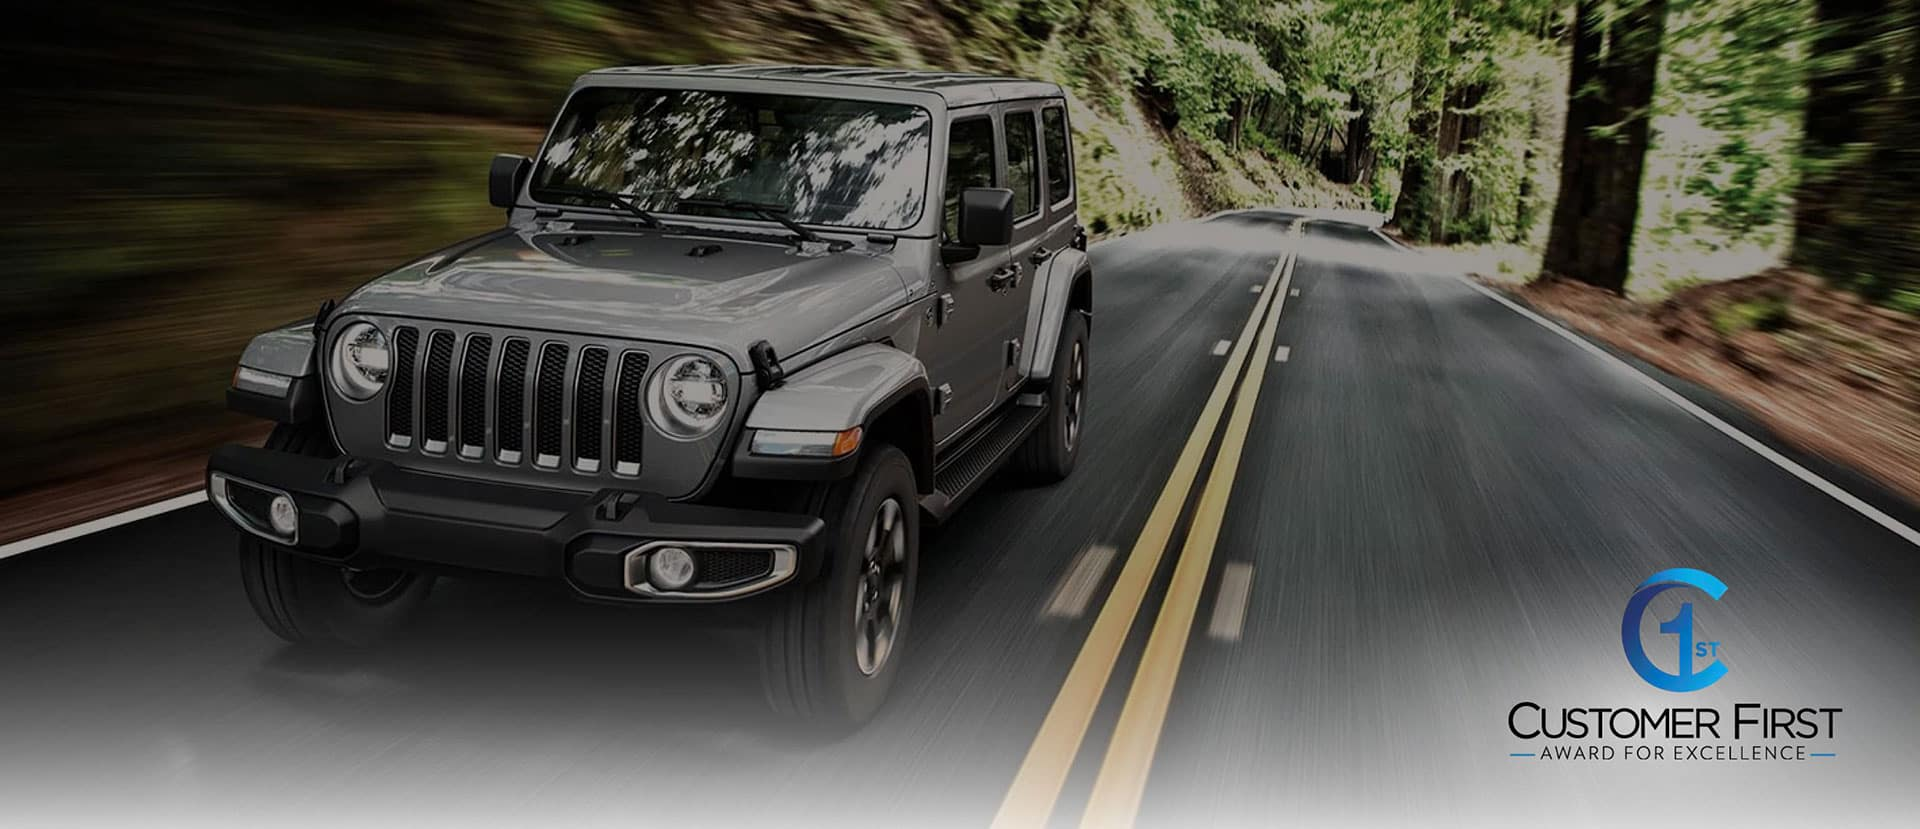 Jeep Dealership Indianapolis >> Chrysler Dodge Jeep Ram Dealer Carmel Indianapolis Fishers In